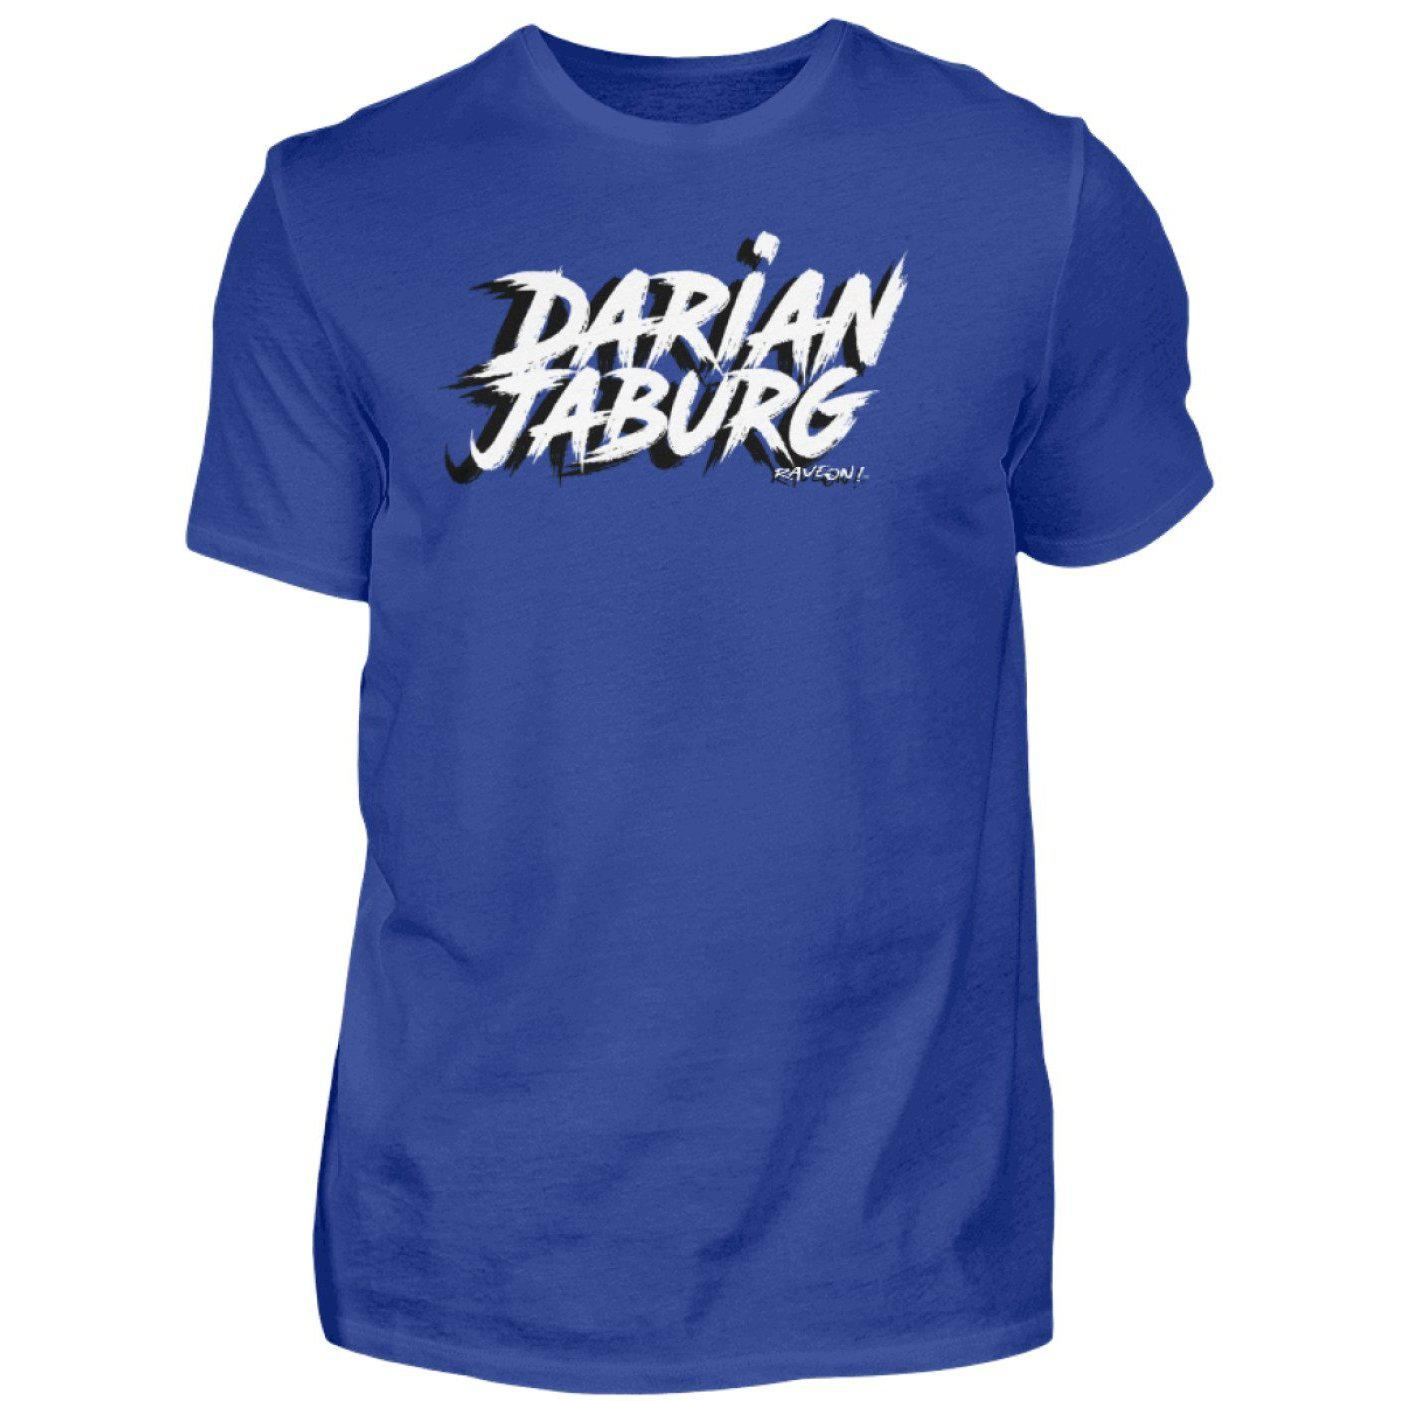 Darian Jaburg - BS Rec.Black - Rave On!® - Herren Premiumshirt Herren Premium Shirt Royal / S - Rave On!® der Club & Techno Szene Shop für Coole Junge Mode Streetwear Style & Fashion Outfits + Sexy Festival 420 Stuff